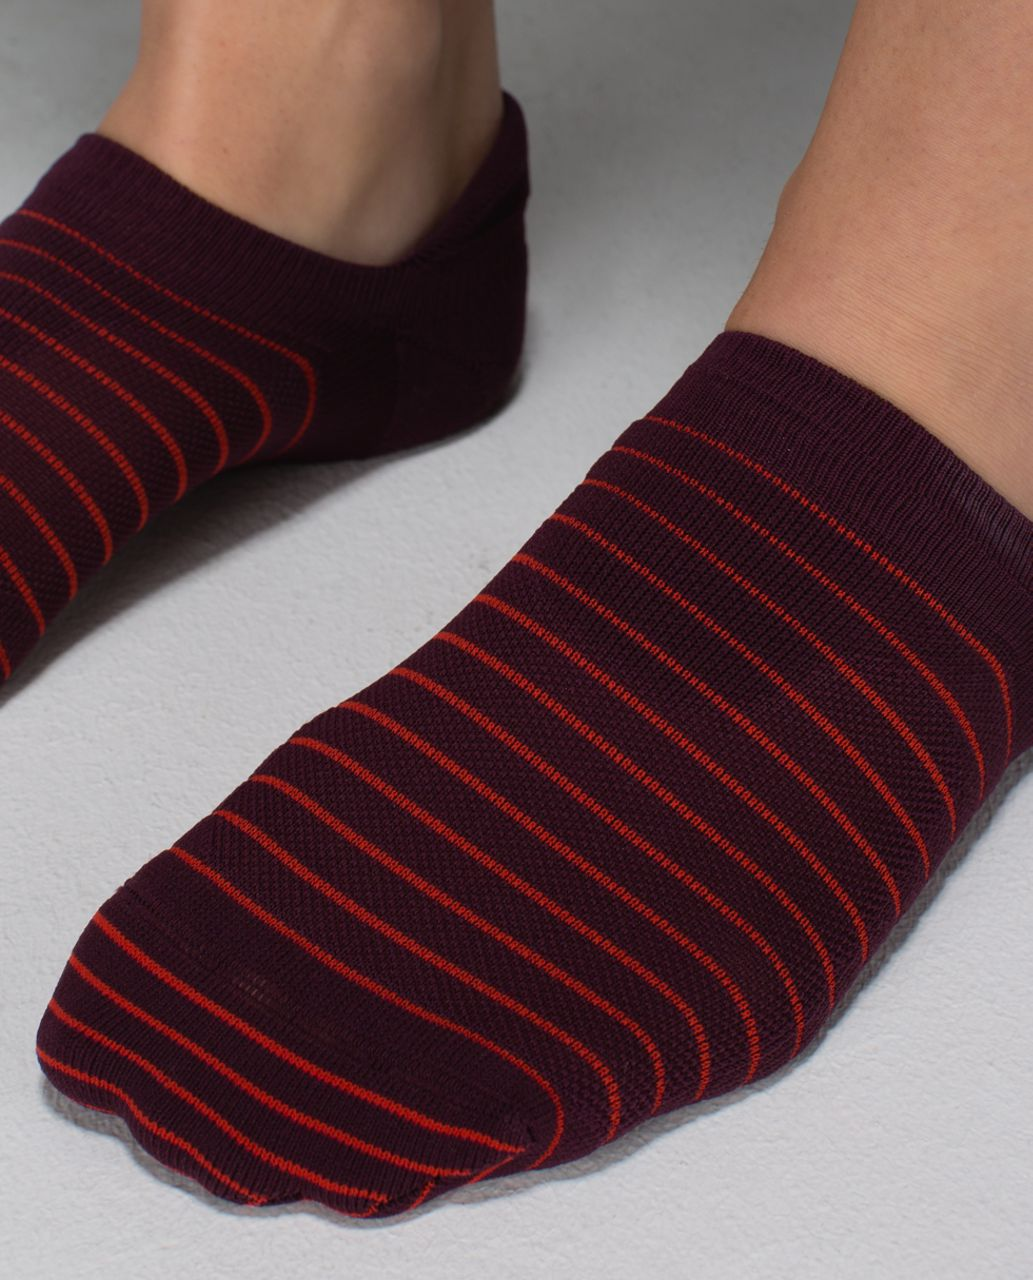 Lululemon Women's Ultimate No Show Run Sock *Ergo Toes - 2x8 Bordeaux Drama